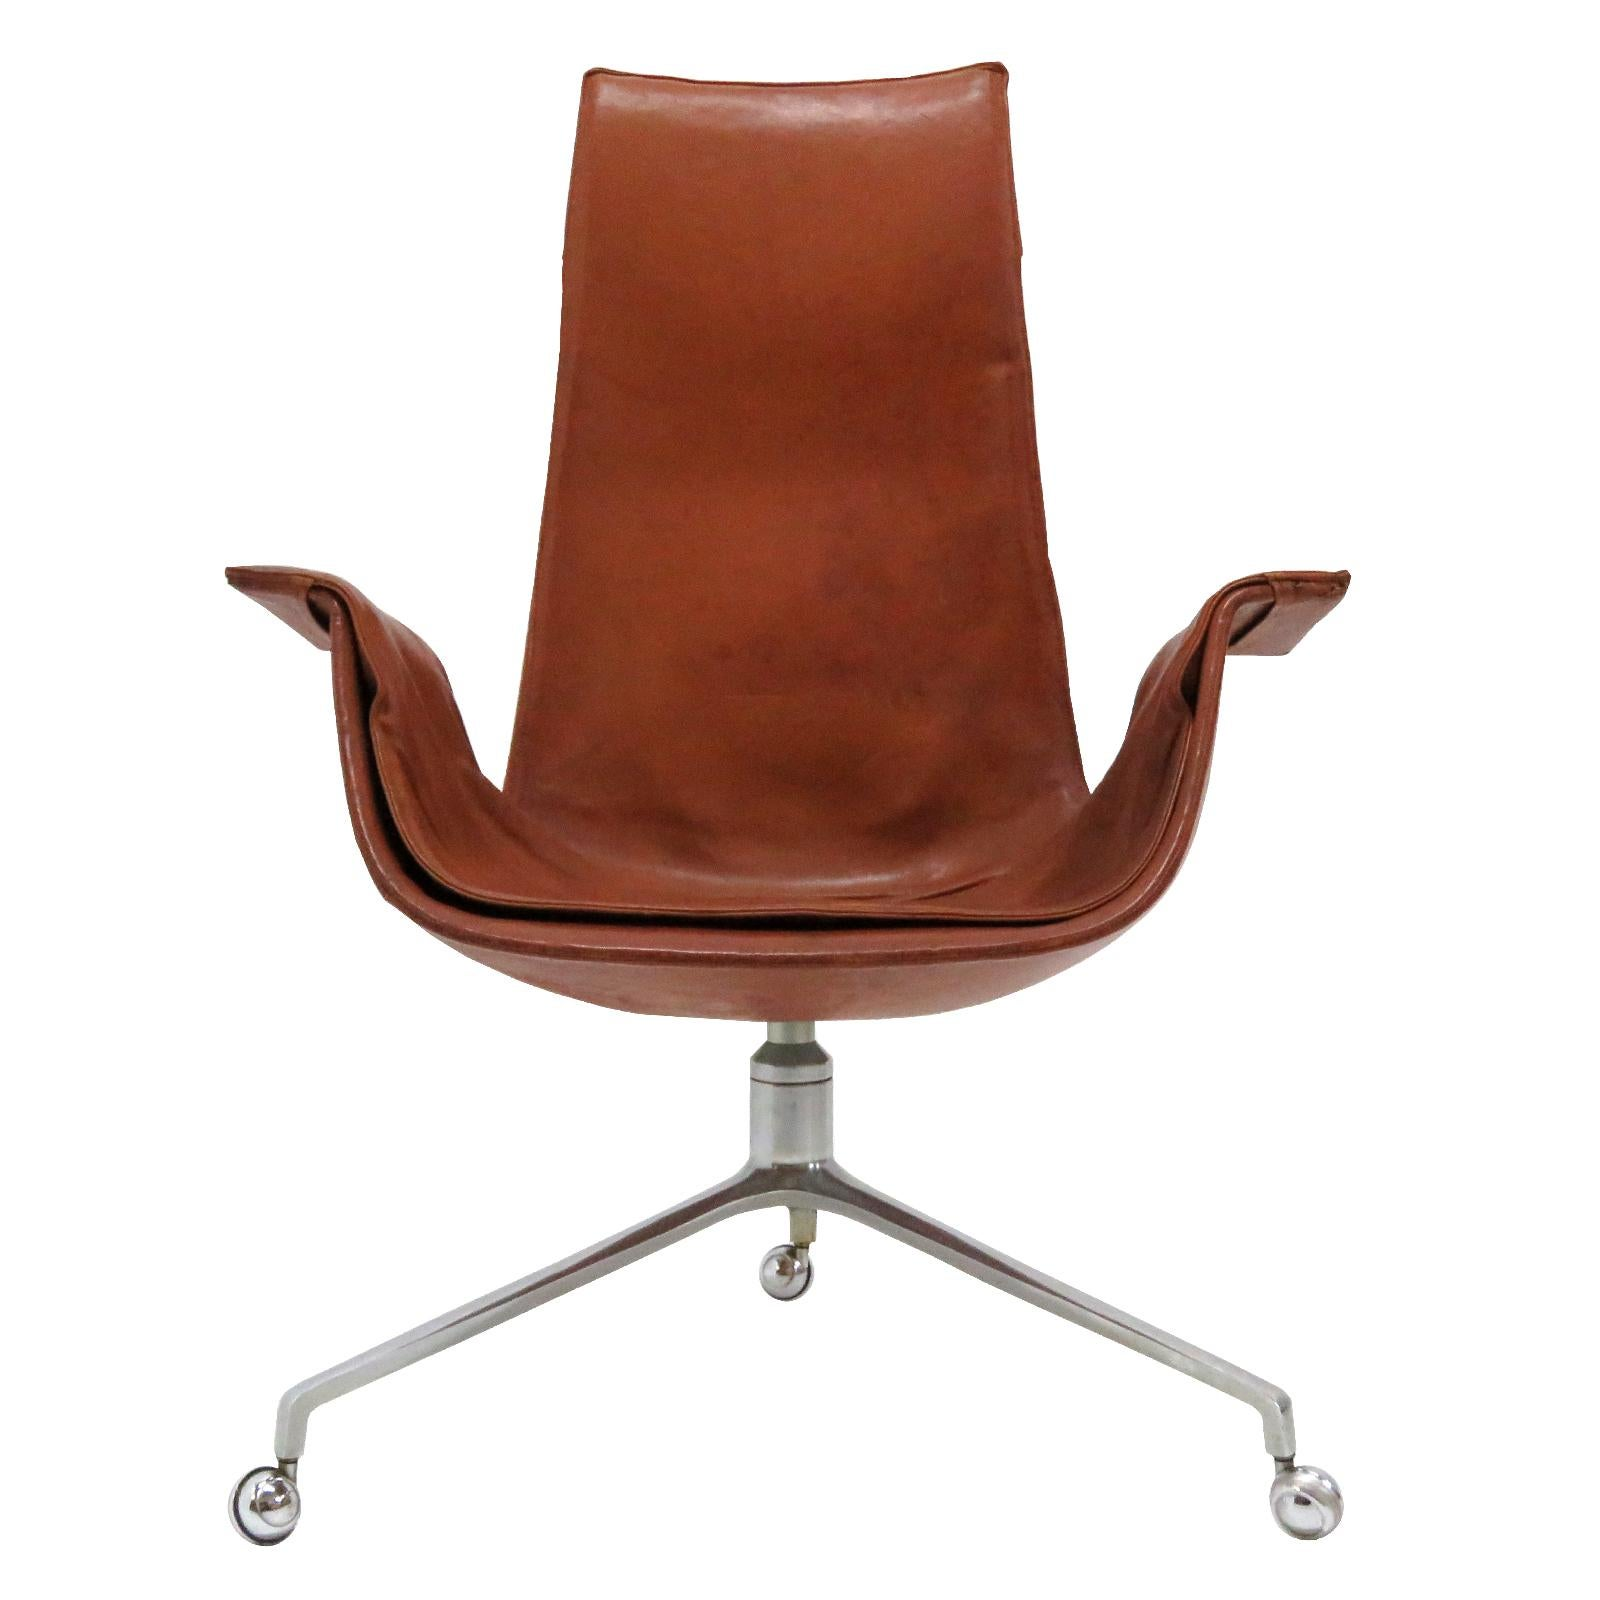 265f10d032e7 1960s Office Chairs and Desk Chairs - 292 For Sale at 1stdibs